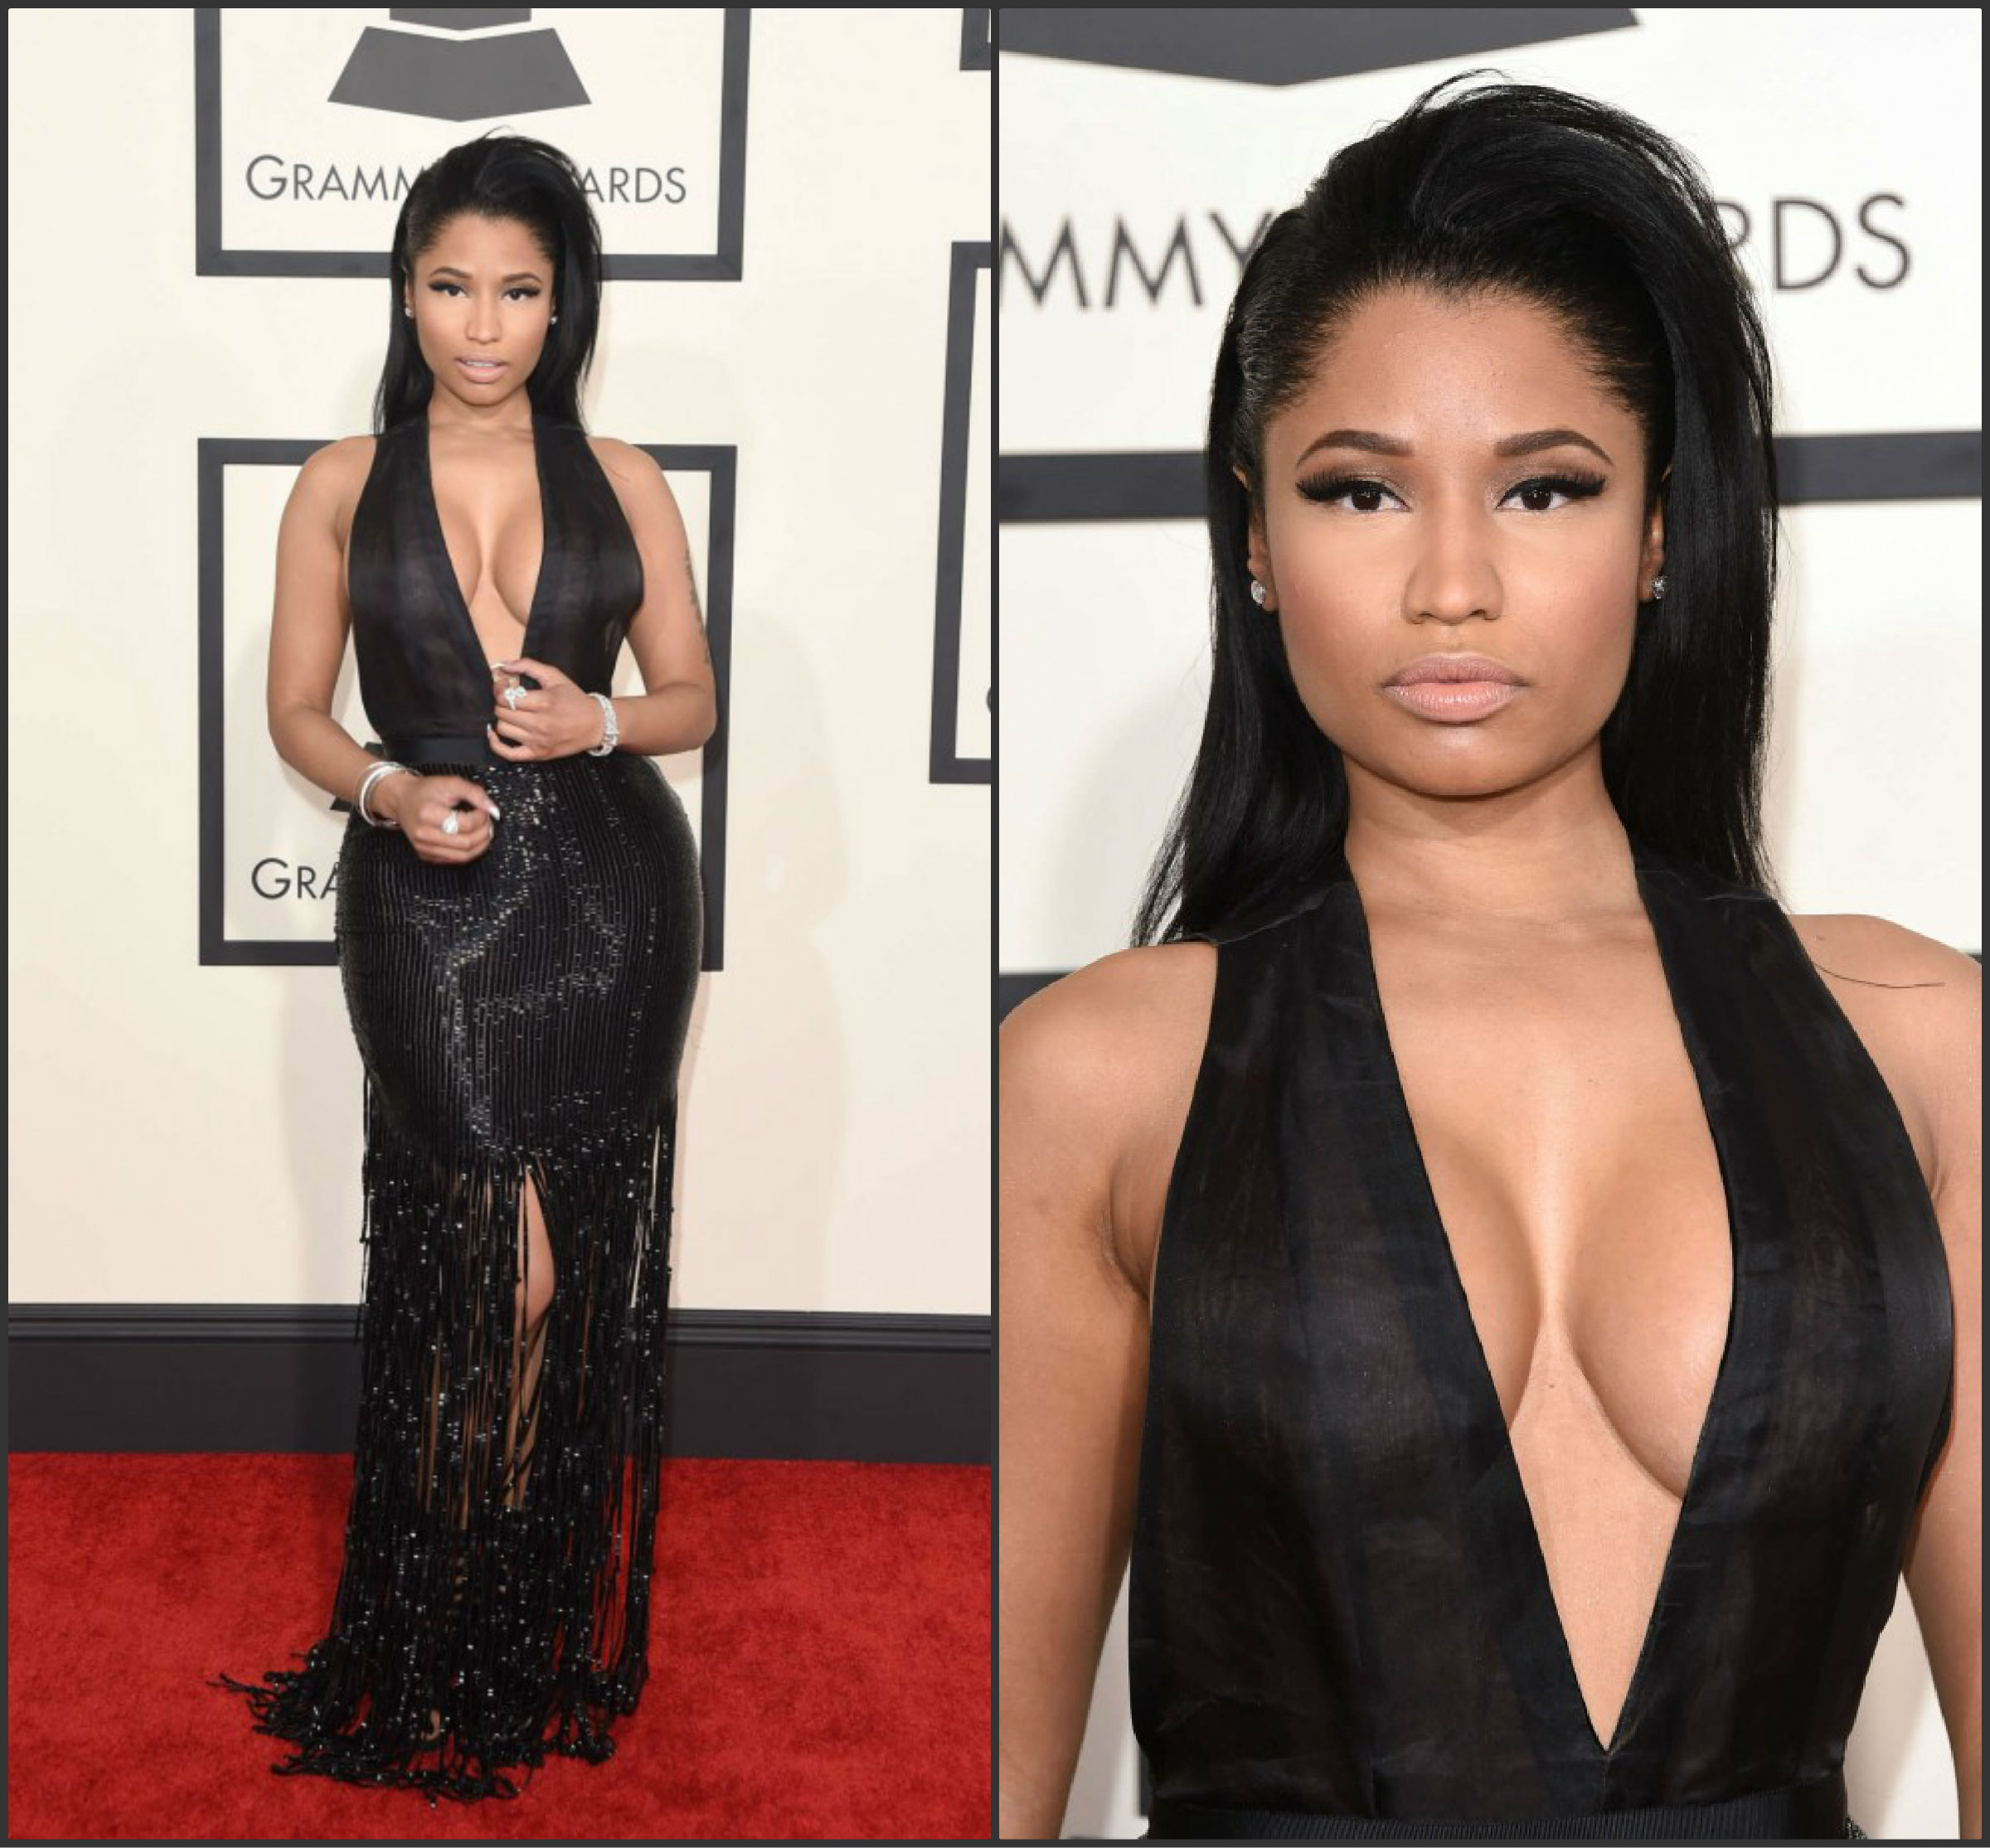 Nicki-Minaj-in-Tom-Ford-at-the-2015-Grammy-Awards